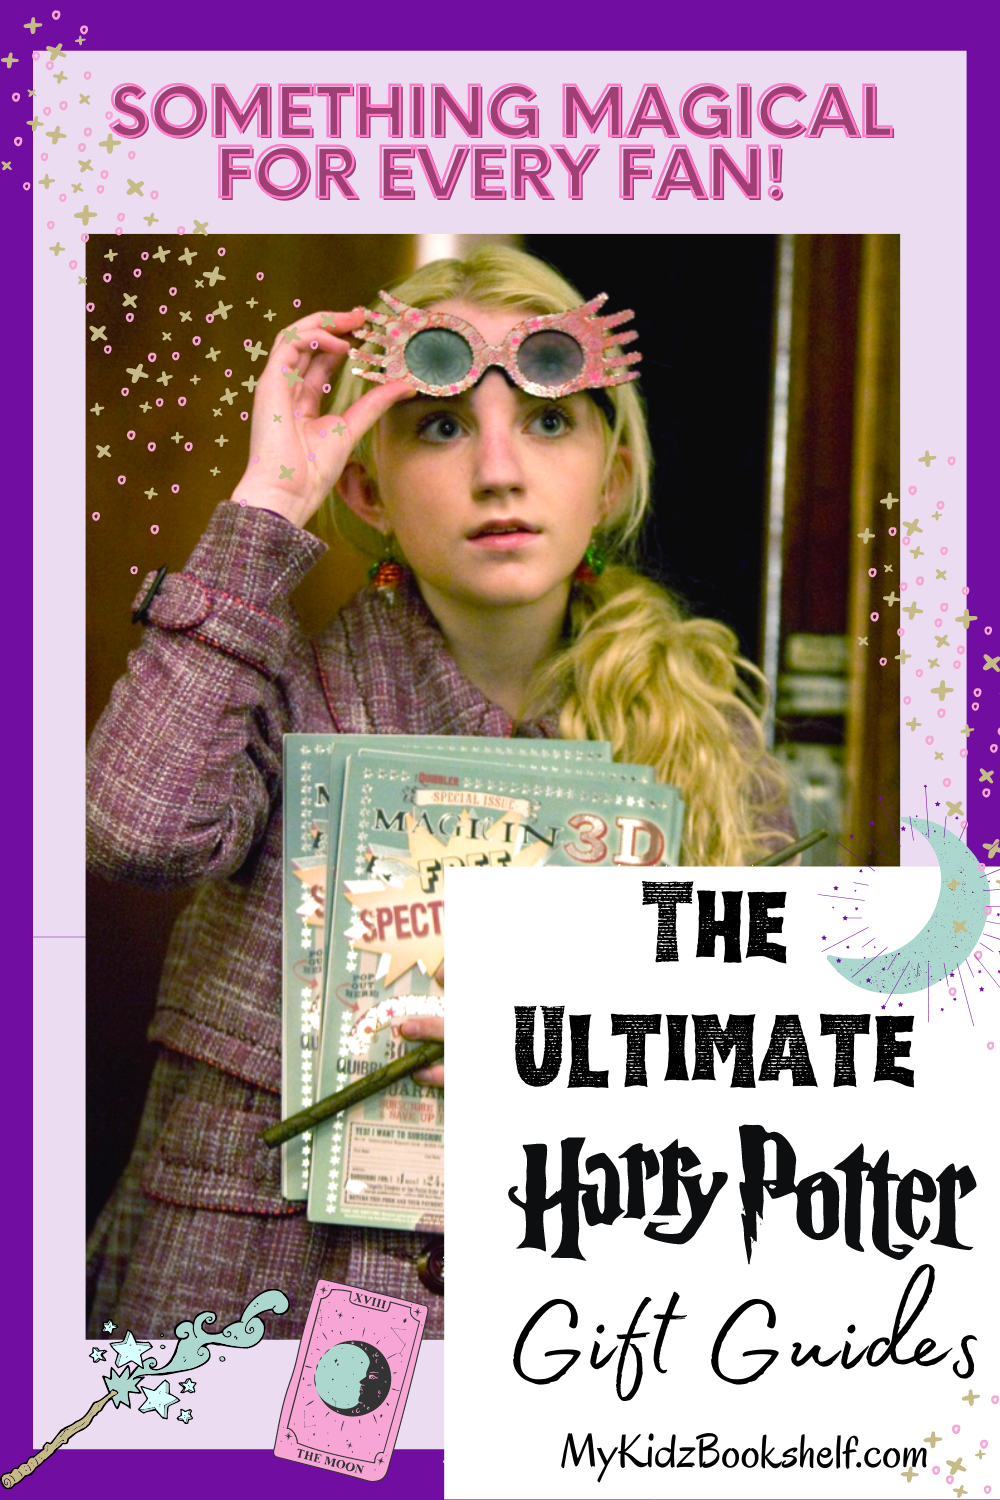 The Ultimate Harry Potter Gift Guides with photo of Luna Lovegood holding her glasses